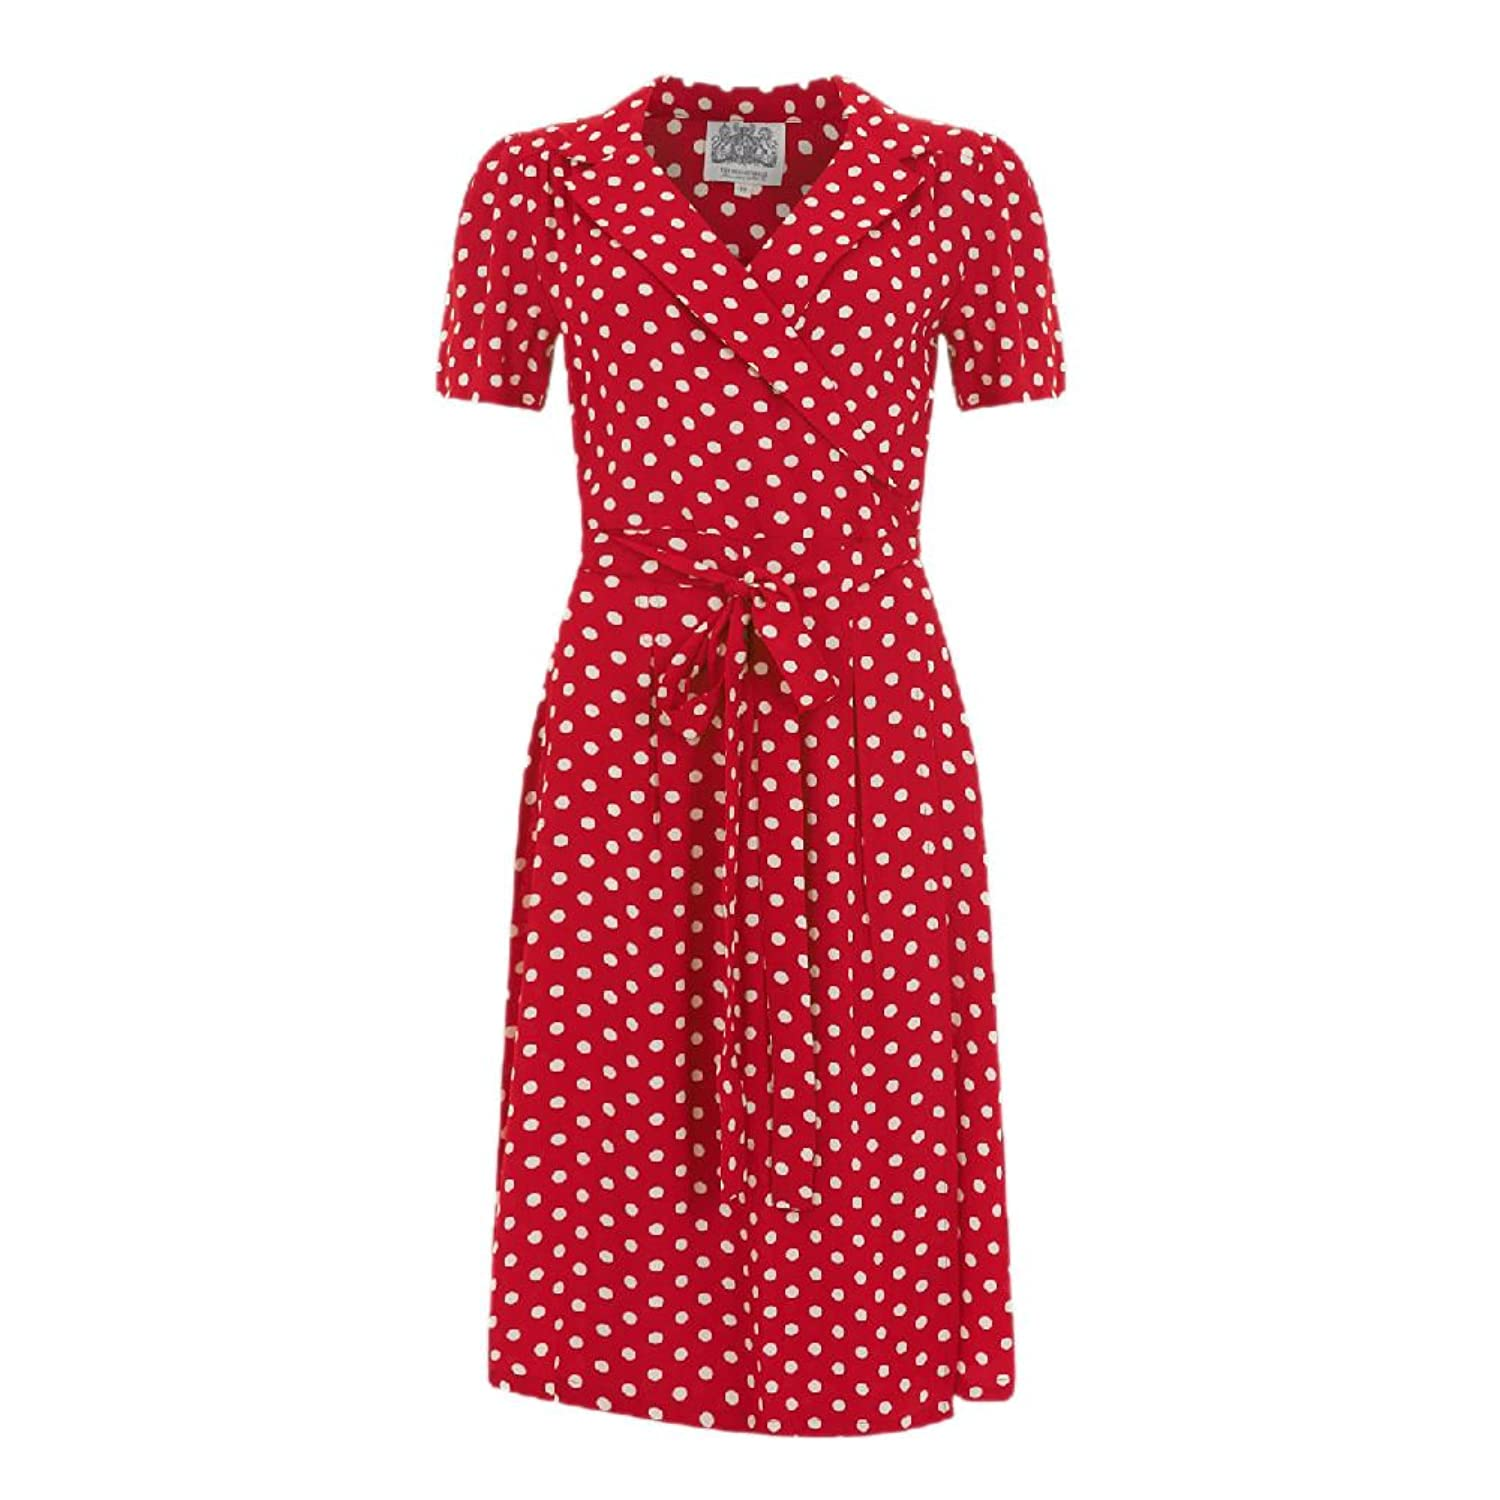 Polka Dot Dresses: 20s, 30s, 40s, 50s, 60s Seamstress Of Bloomsbury Red with White Spots 1940s Peggy Wrap Dress $88.96 AT vintagedancer.com